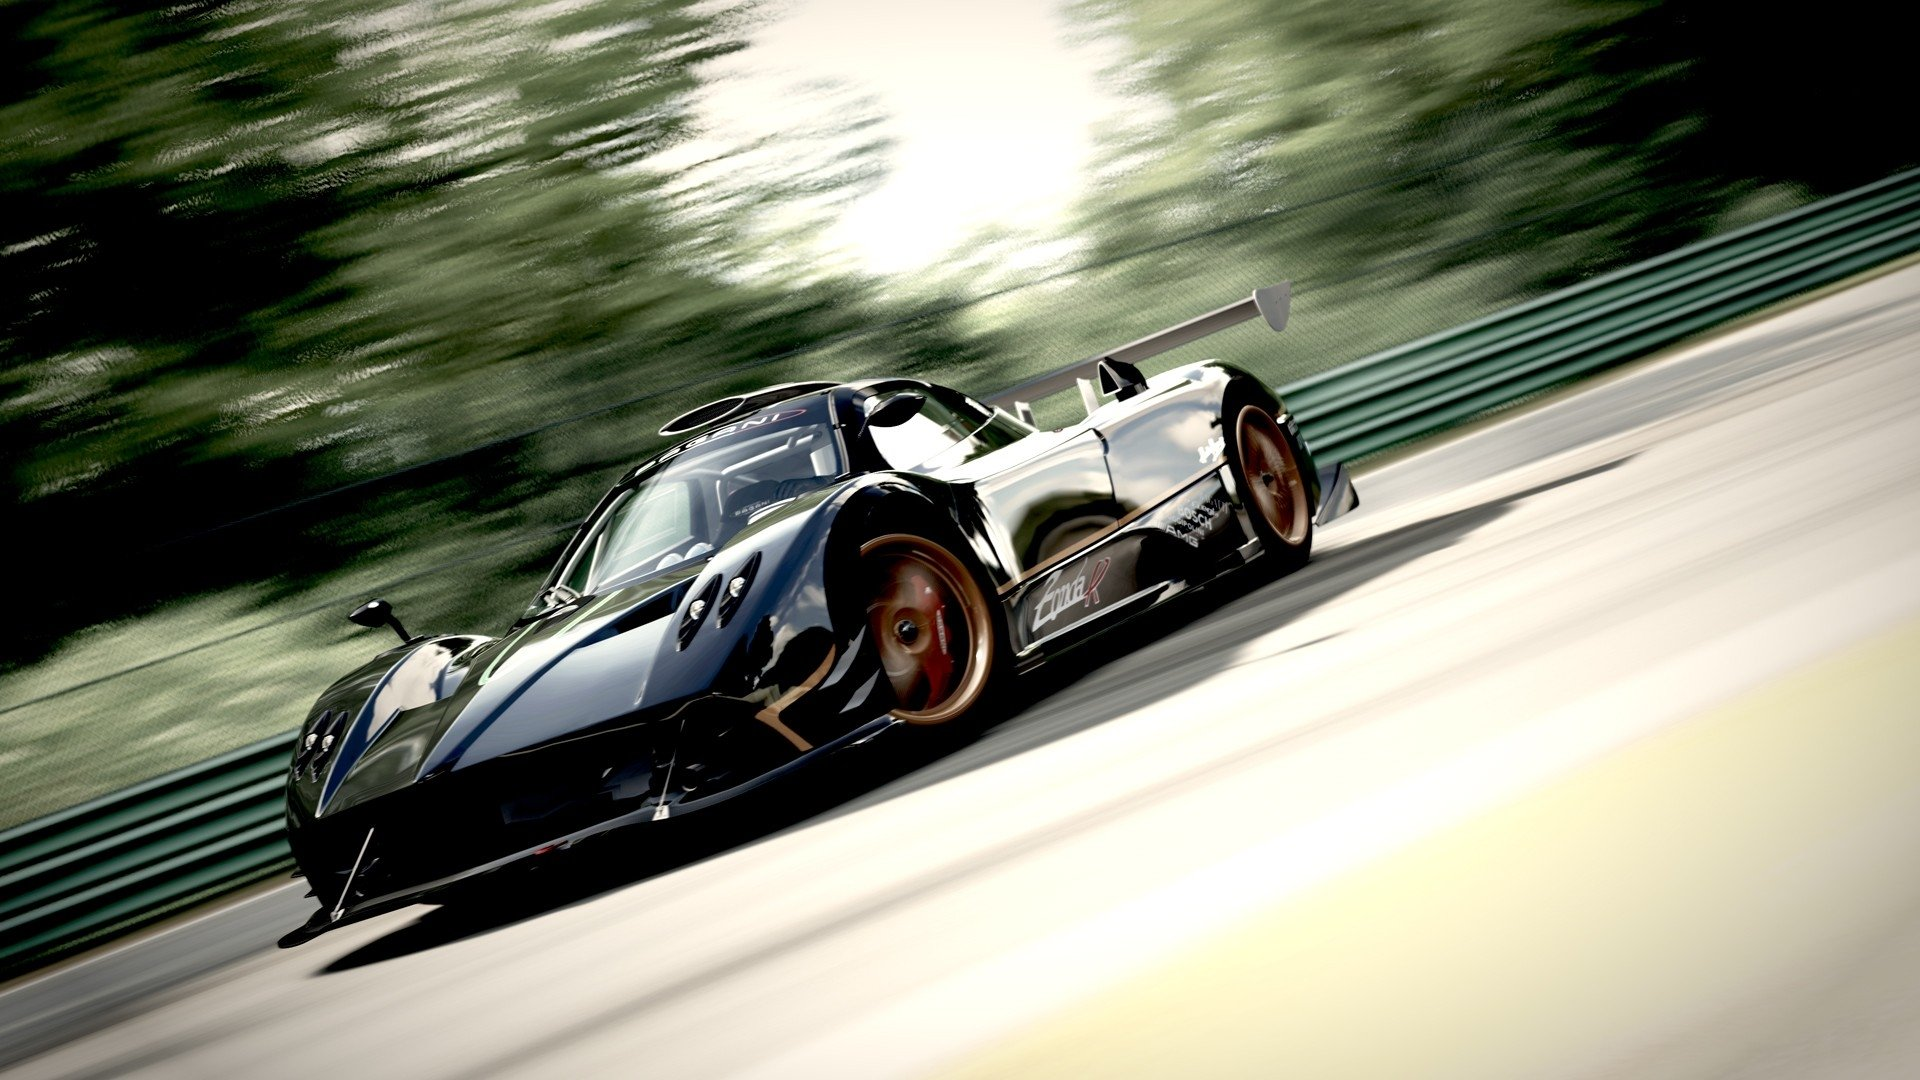 146 pagani zonda hd wallpapers | background images - wallpaper abyss